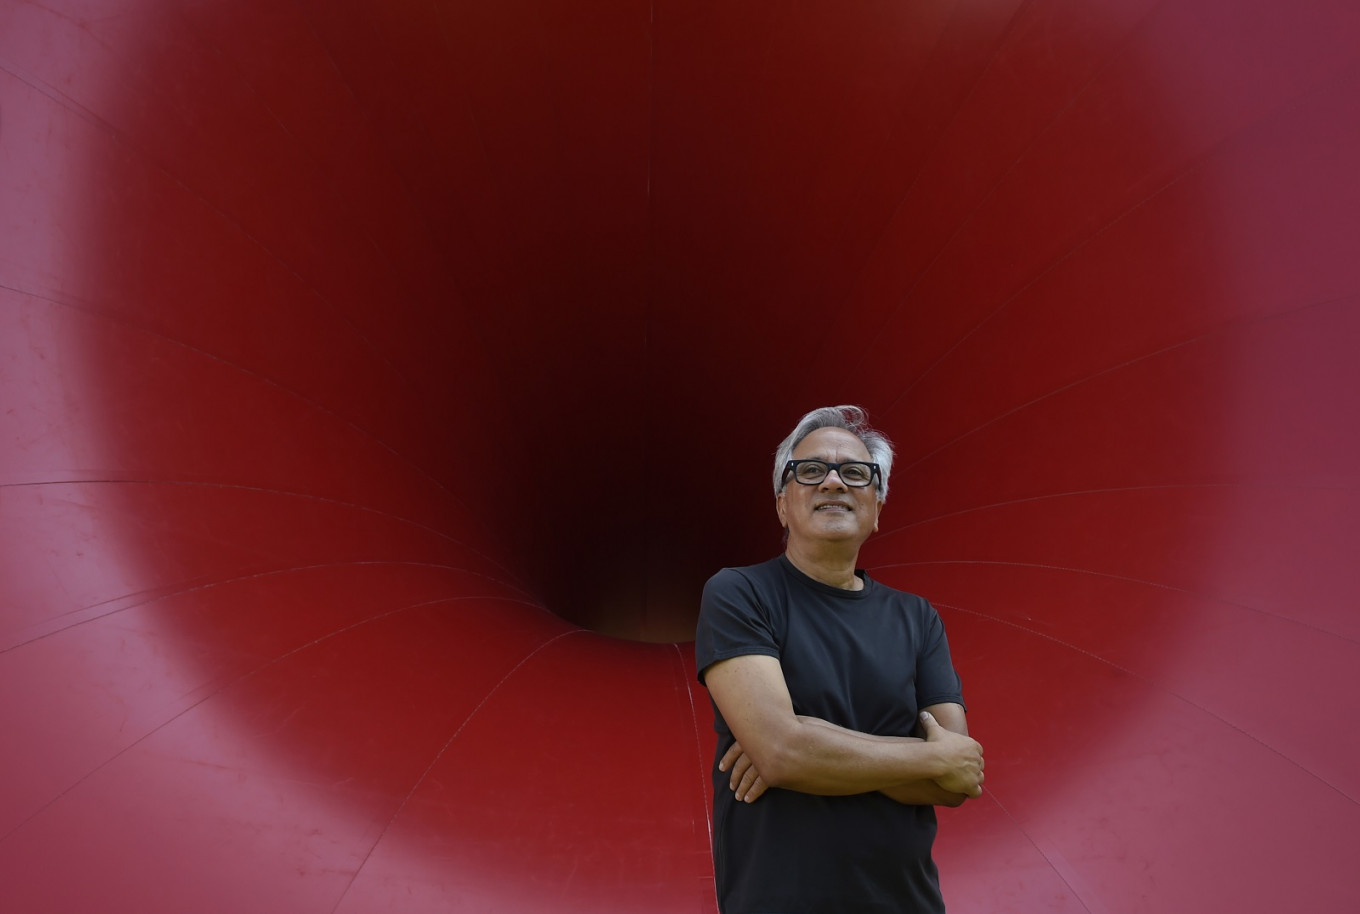 Anish Kapoor experimenting with 'blackest material in universe' ahead of Venice Biennale